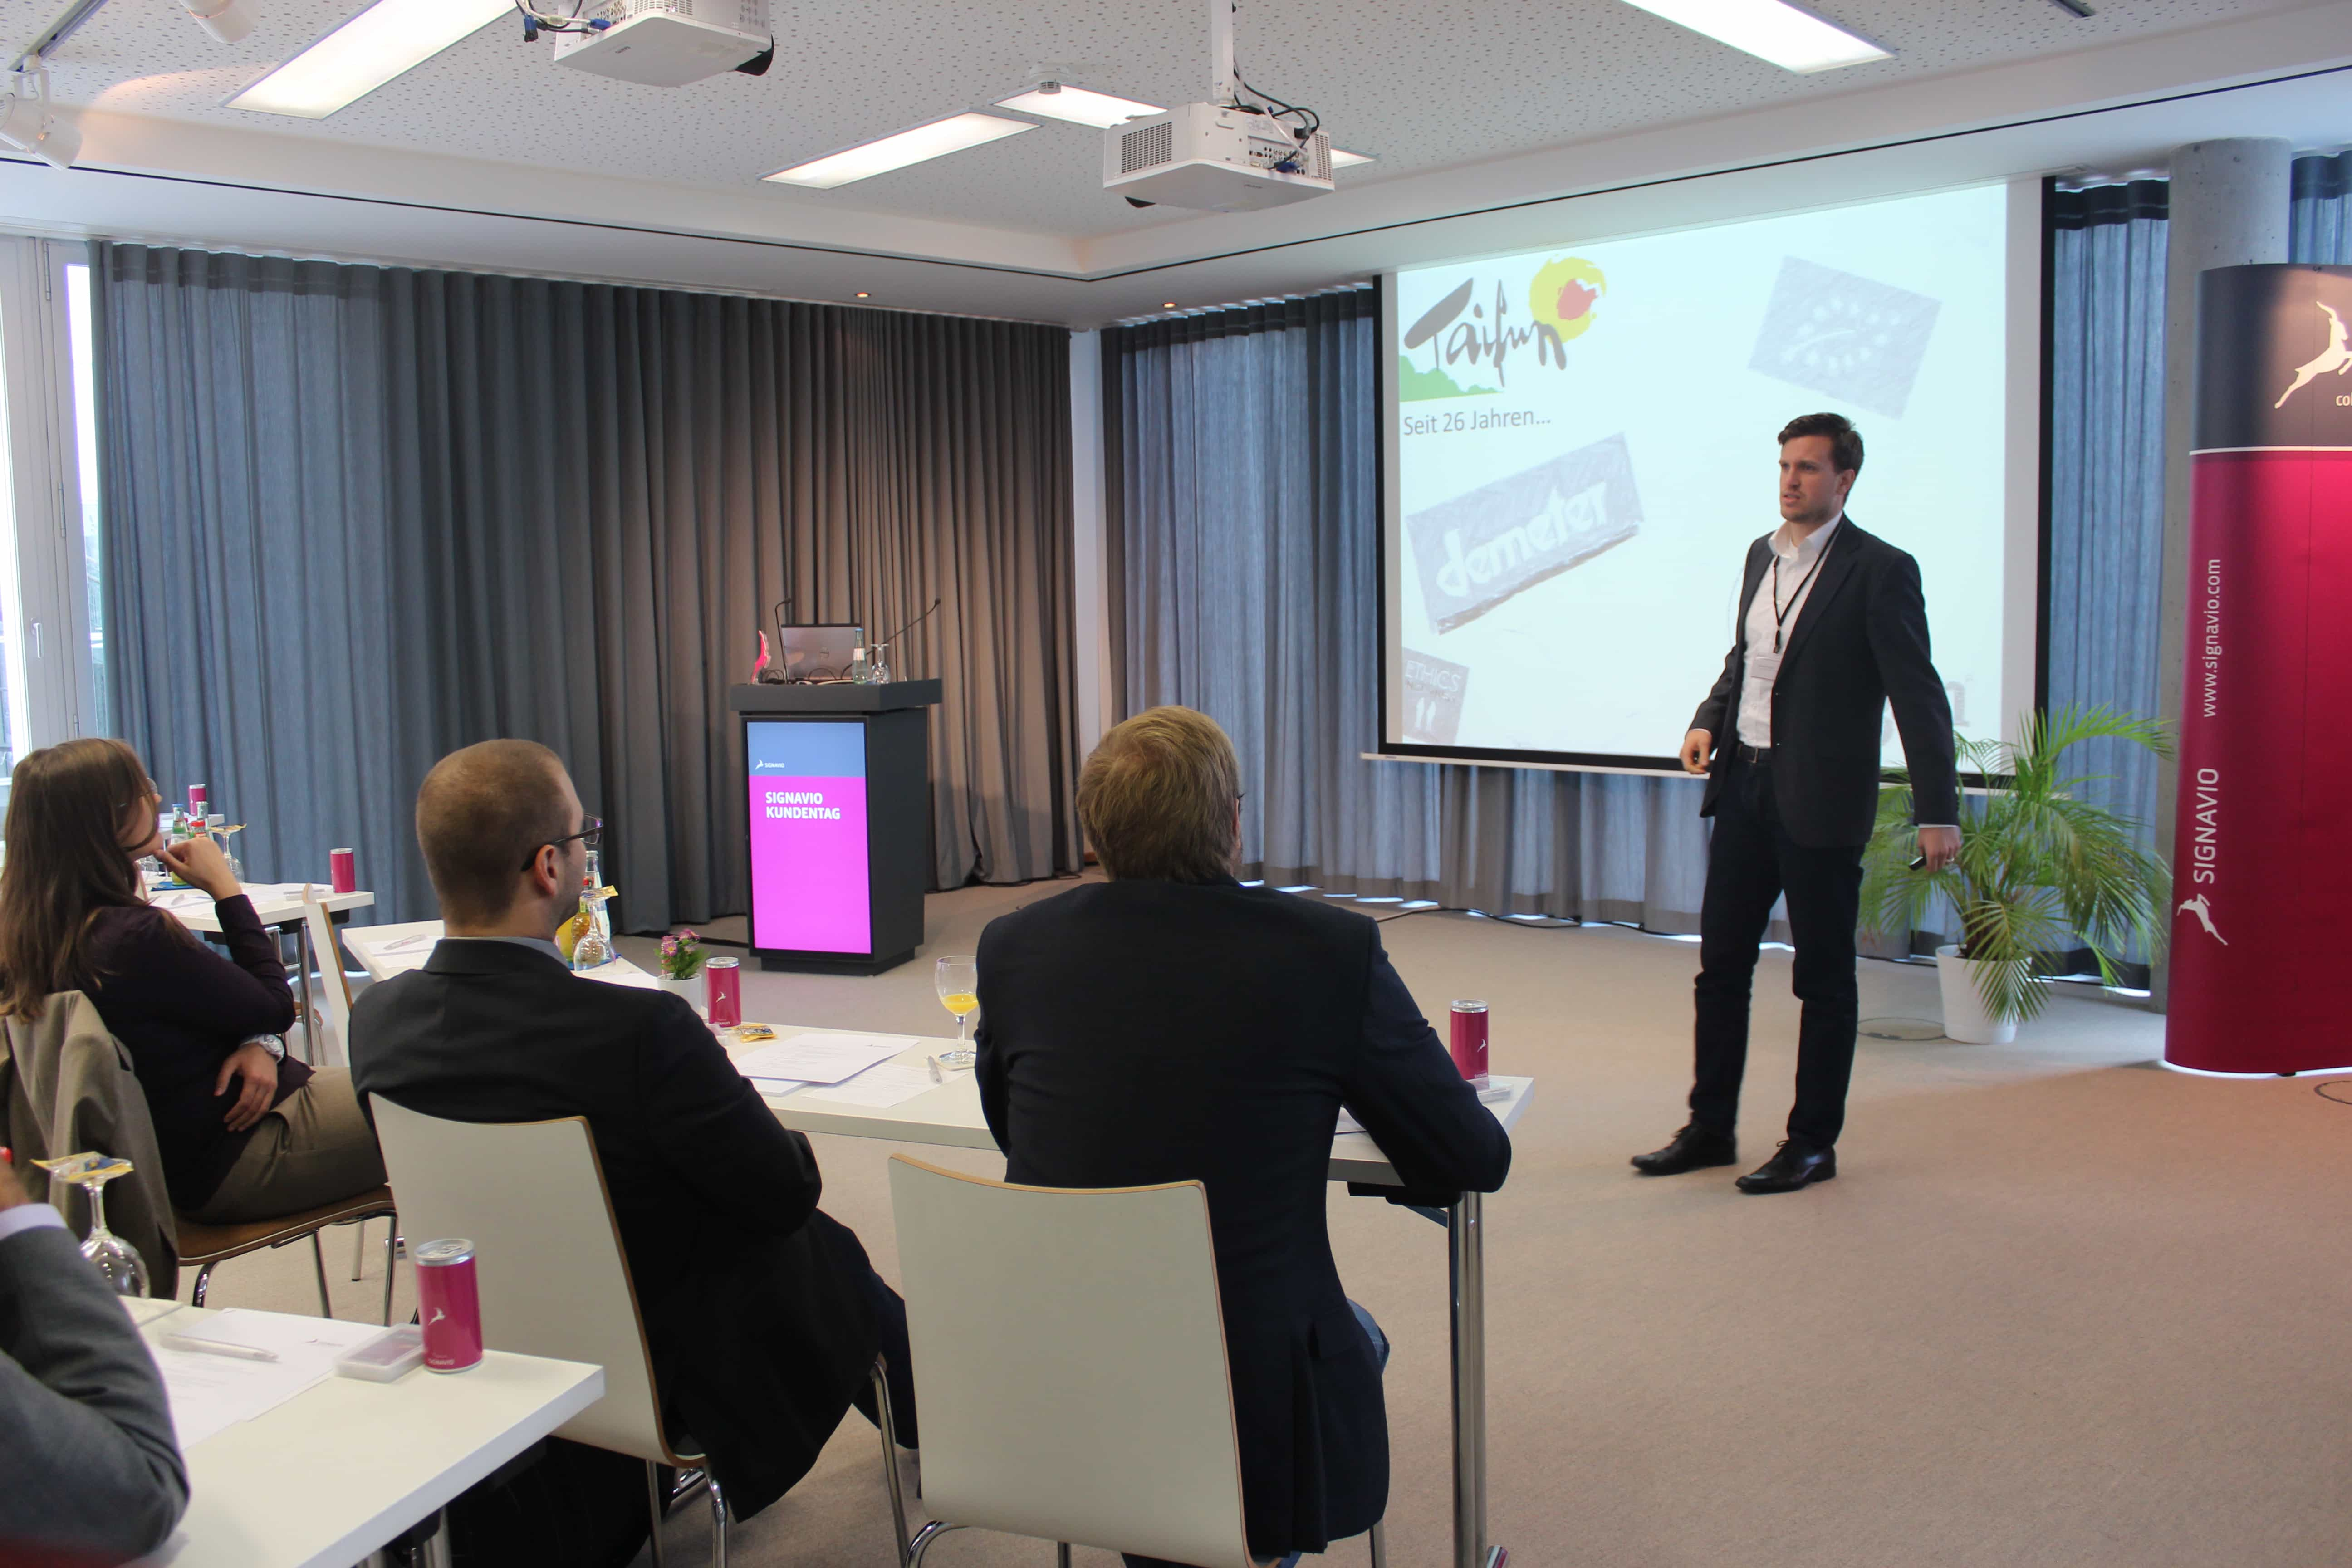 Presentation at the 3rd Signavio Customer Day in Berlin